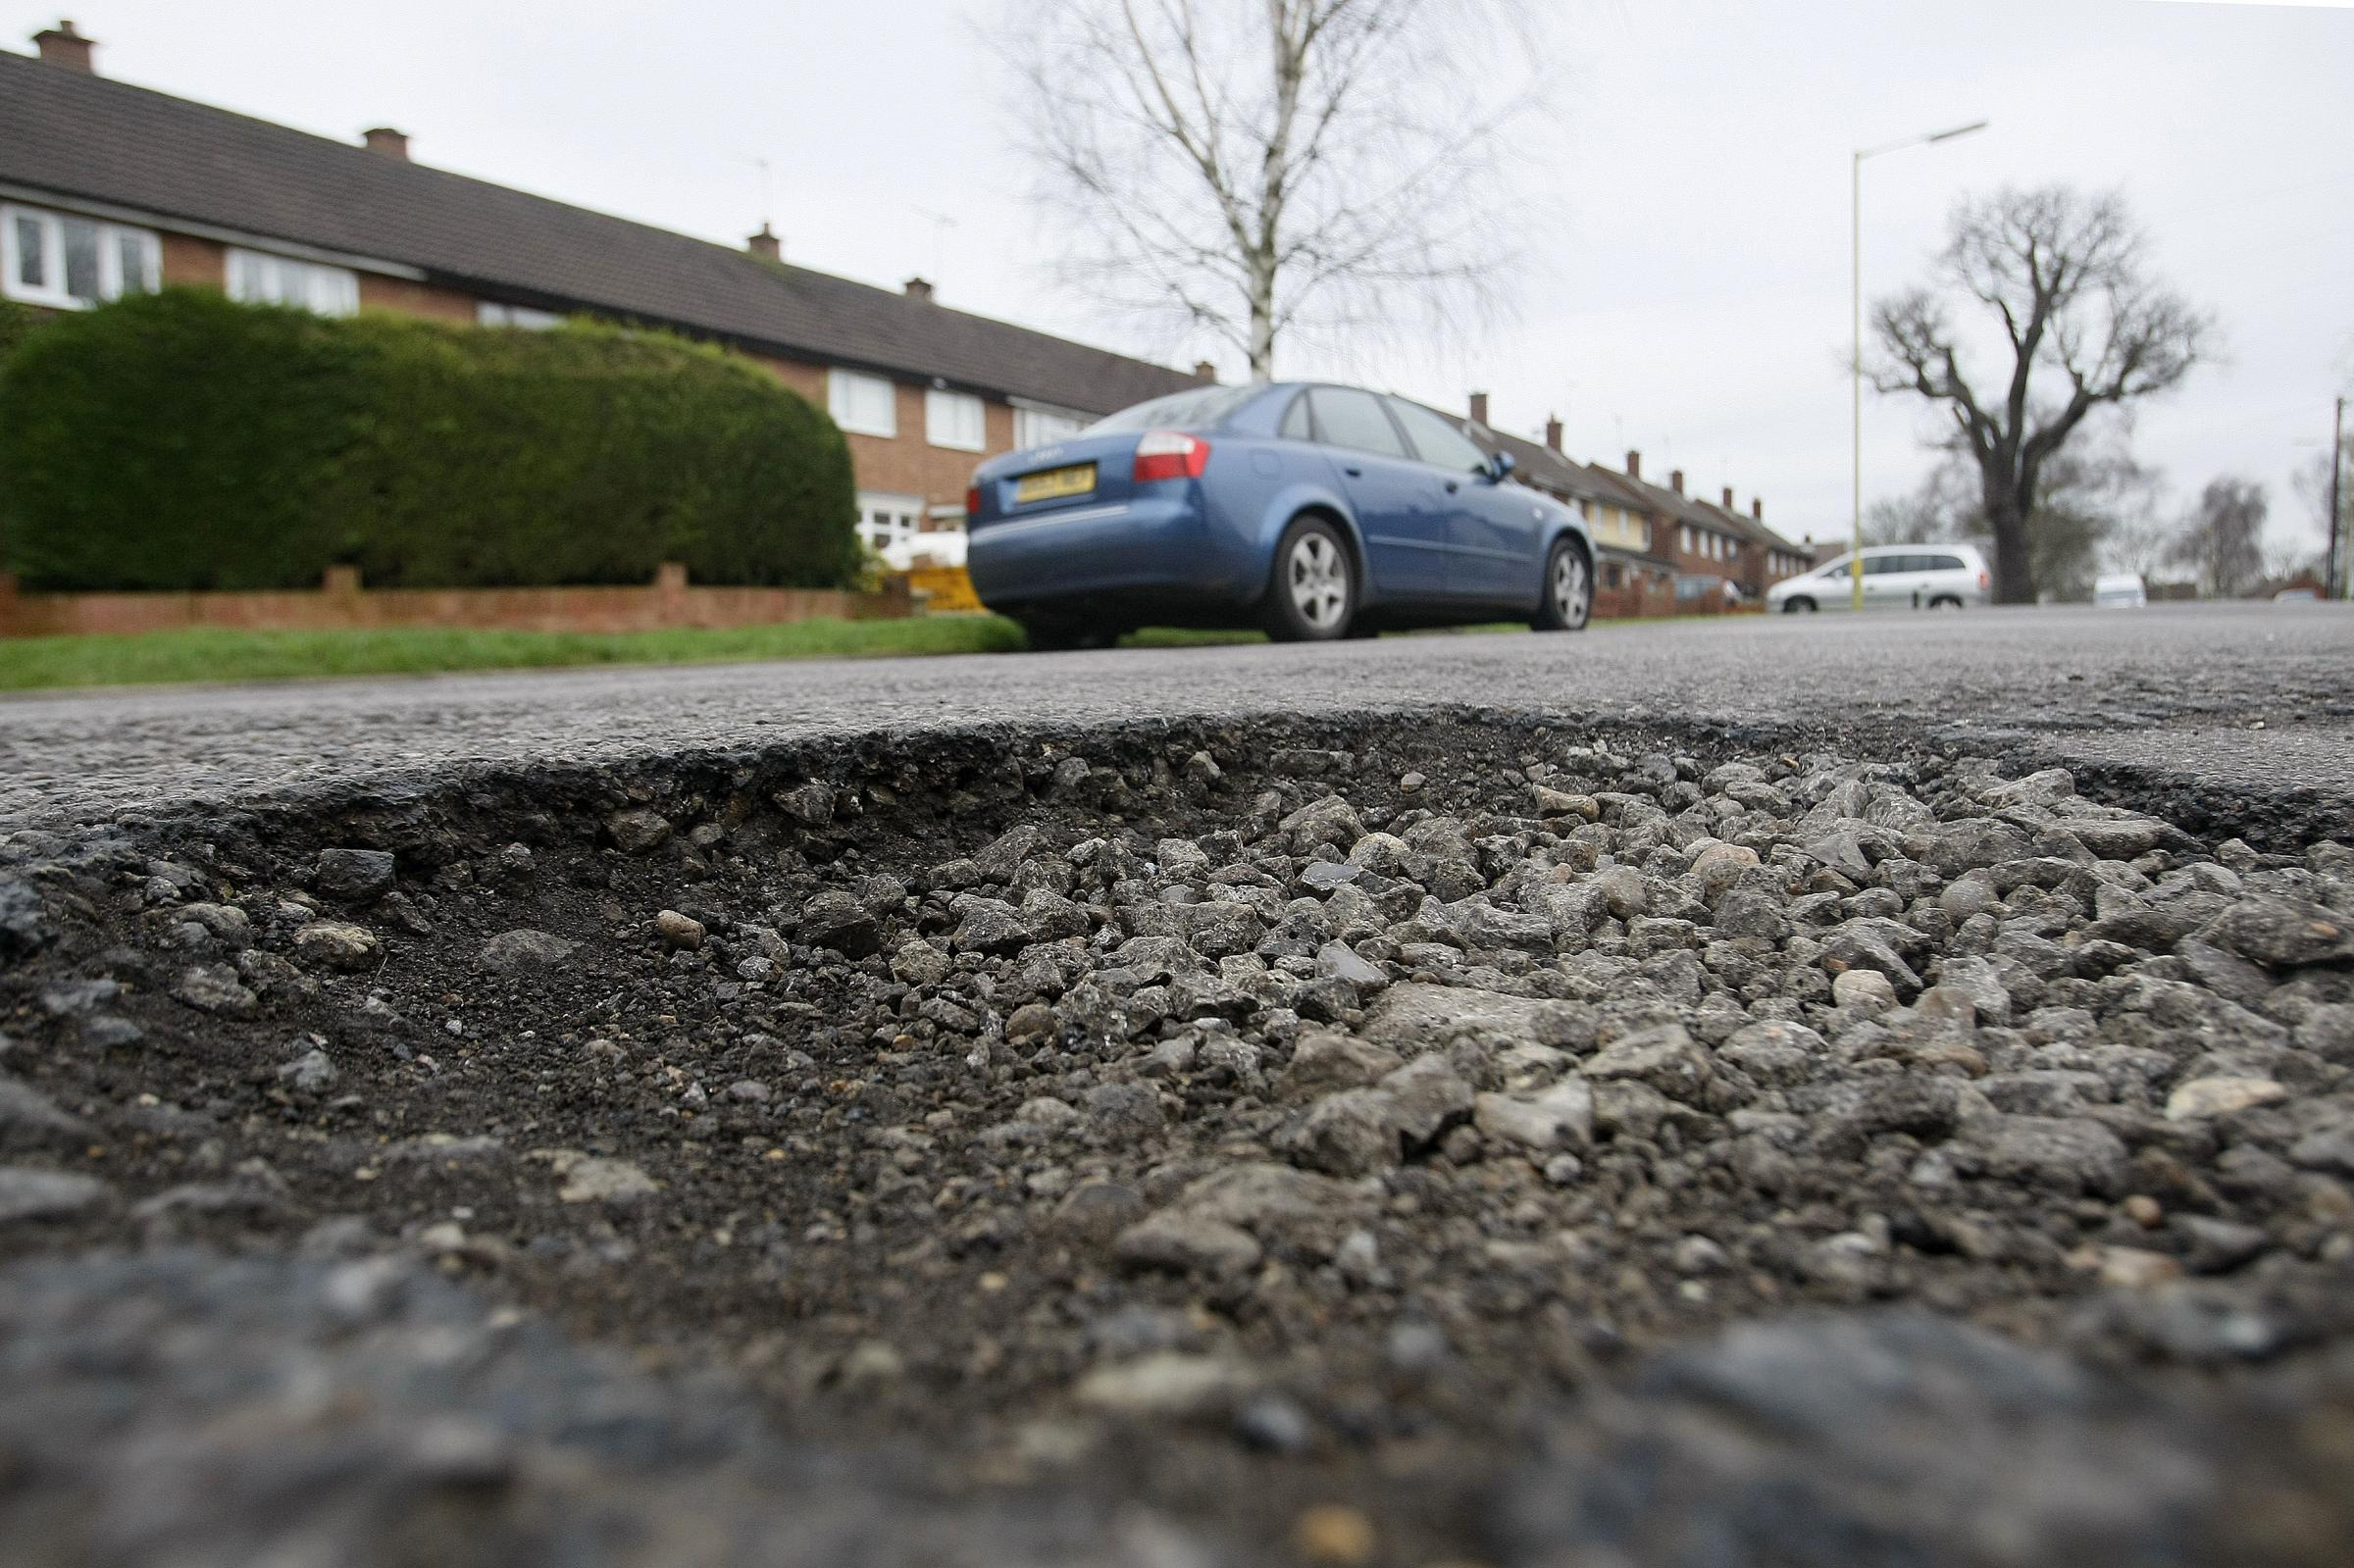 Councils in Dorset given £6m to fix potholes caused by winter storms